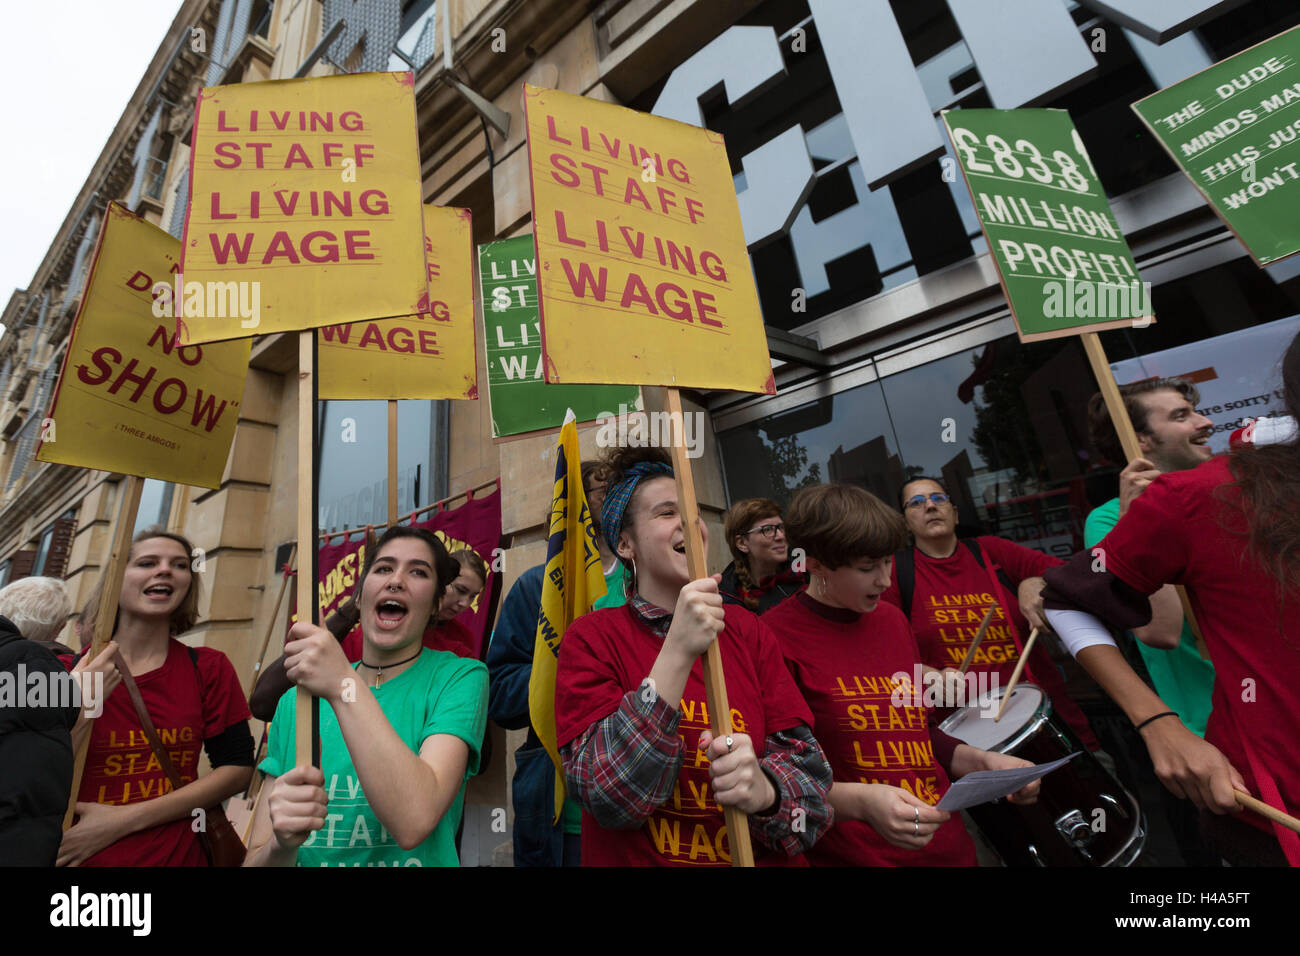 Hackney, London, UK. 15th October 2016. Hackney Picturehouse workers walk out on strike and stage a protest with - Stock Image